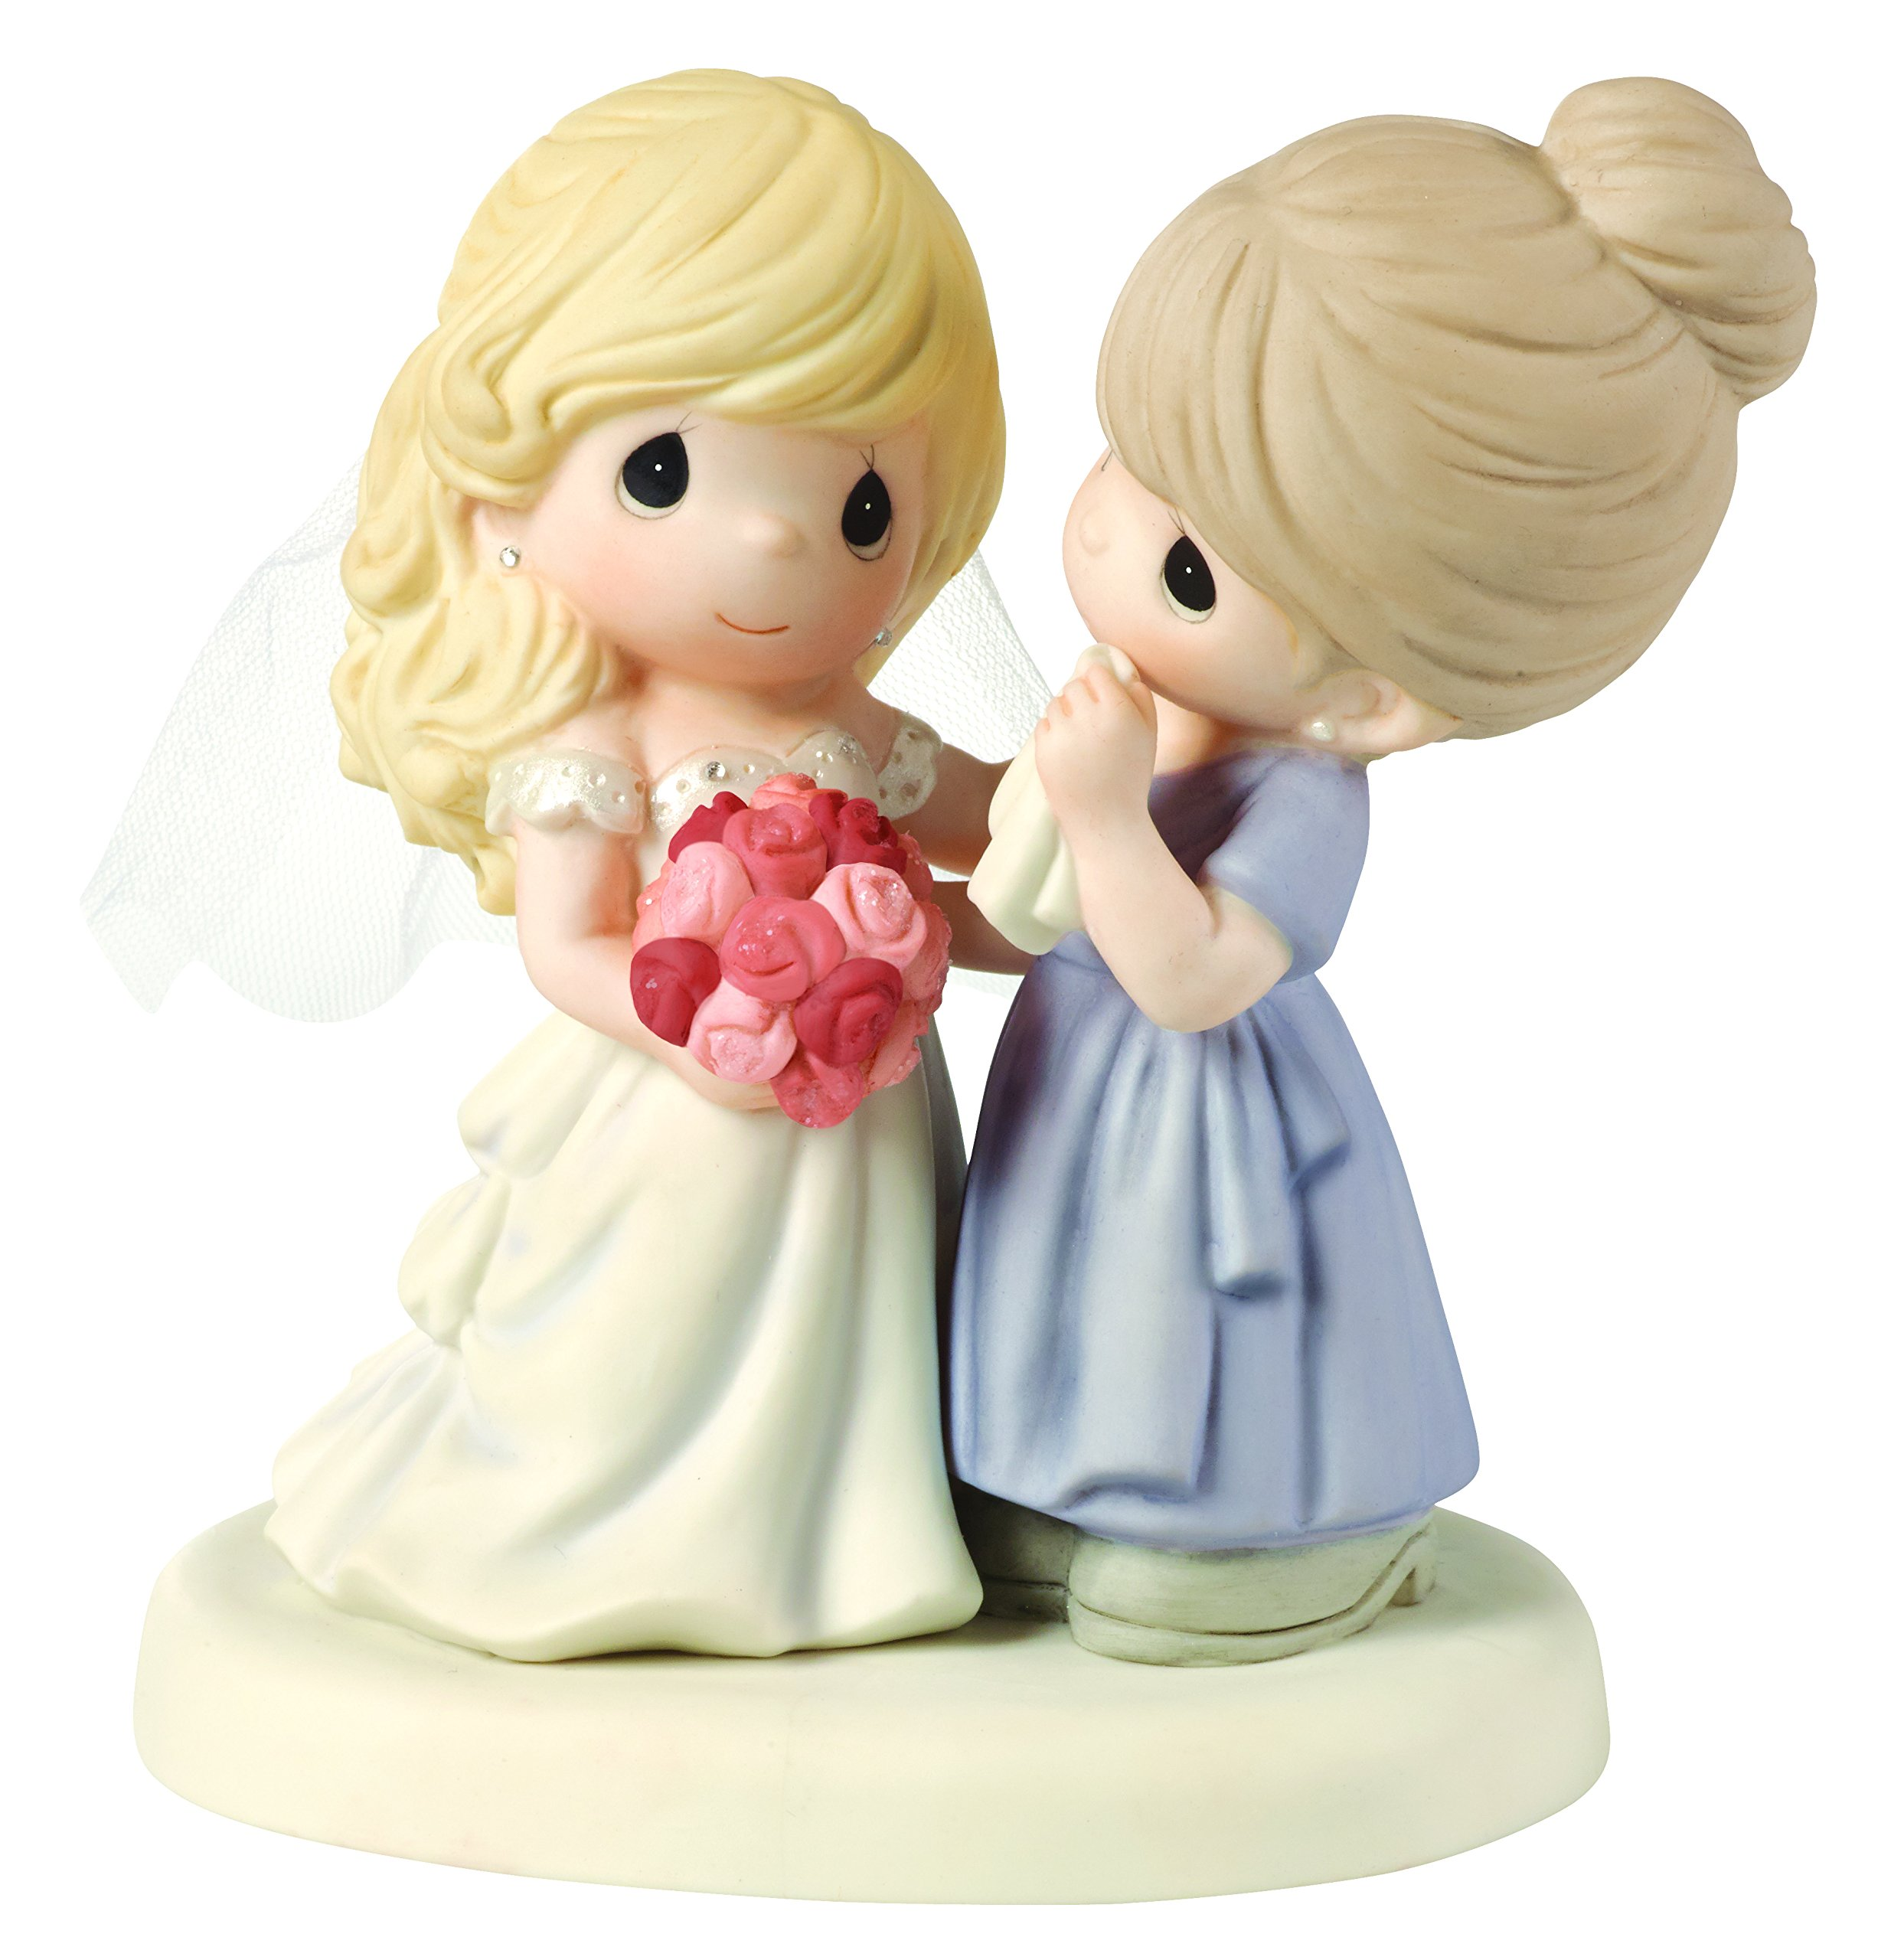 Precious Moments,  My Daughter, My Pride, A Beautiful Bride Bisque Porcelain Figurine, Mother and Daughter, 153009 by Precious Moments